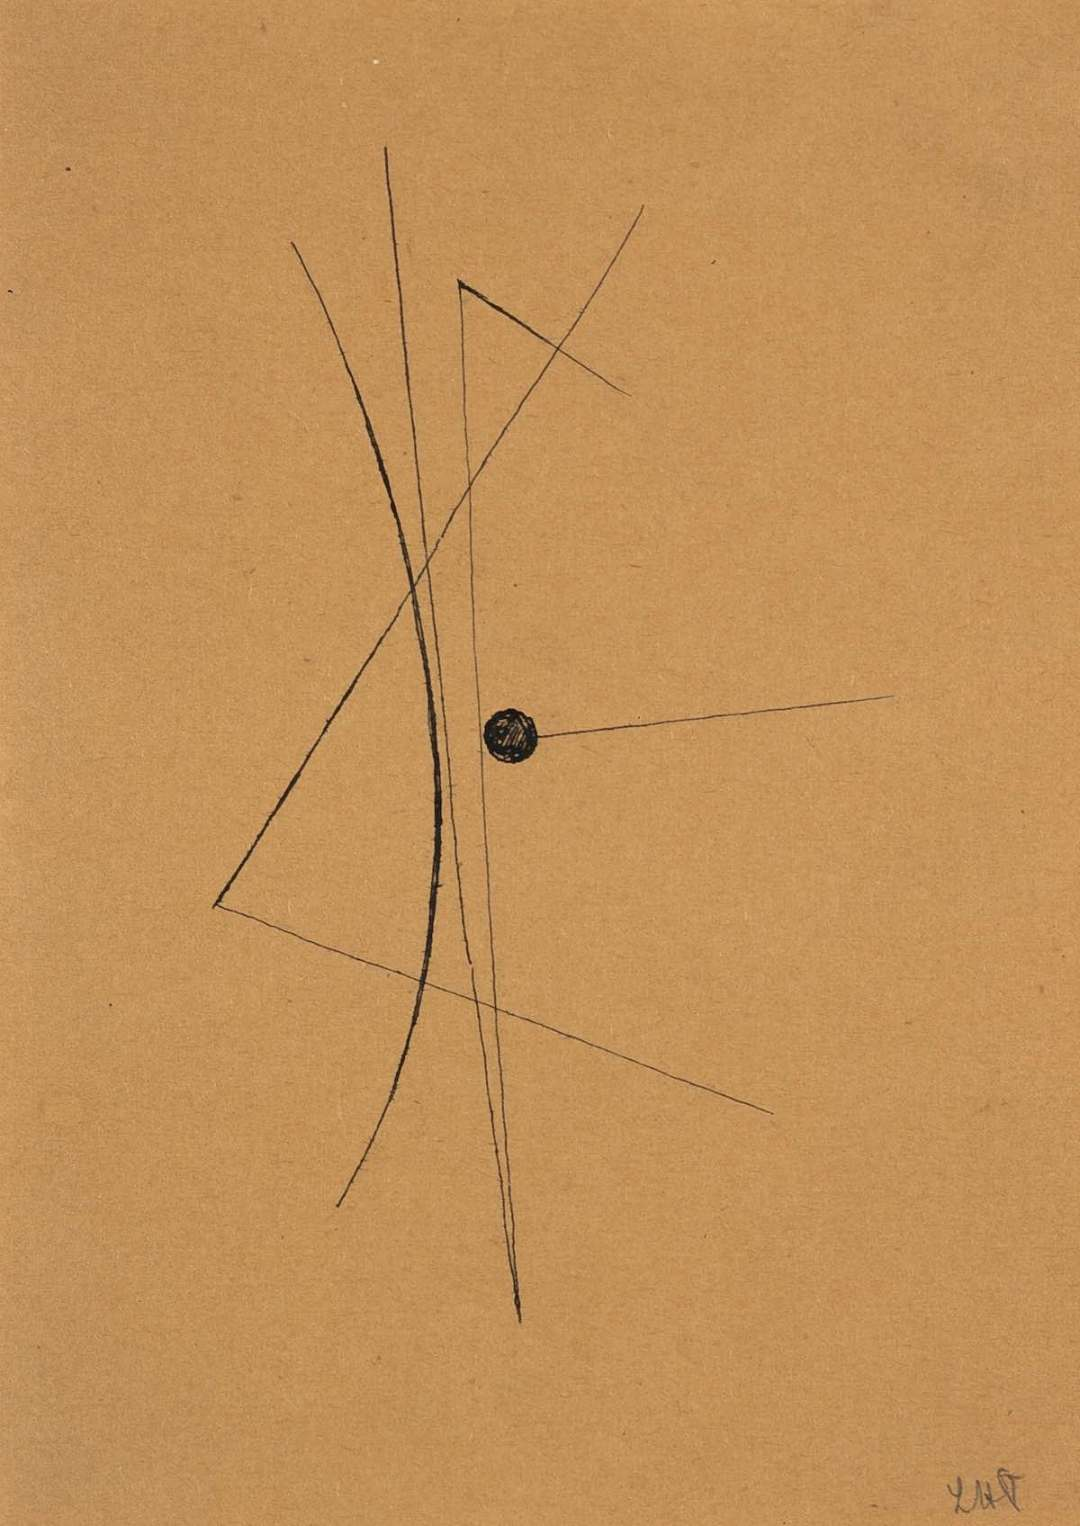 Sans titre, 1928, encre de chine sur papier, 16,2 x 11,8 cm, collection privée, Paris